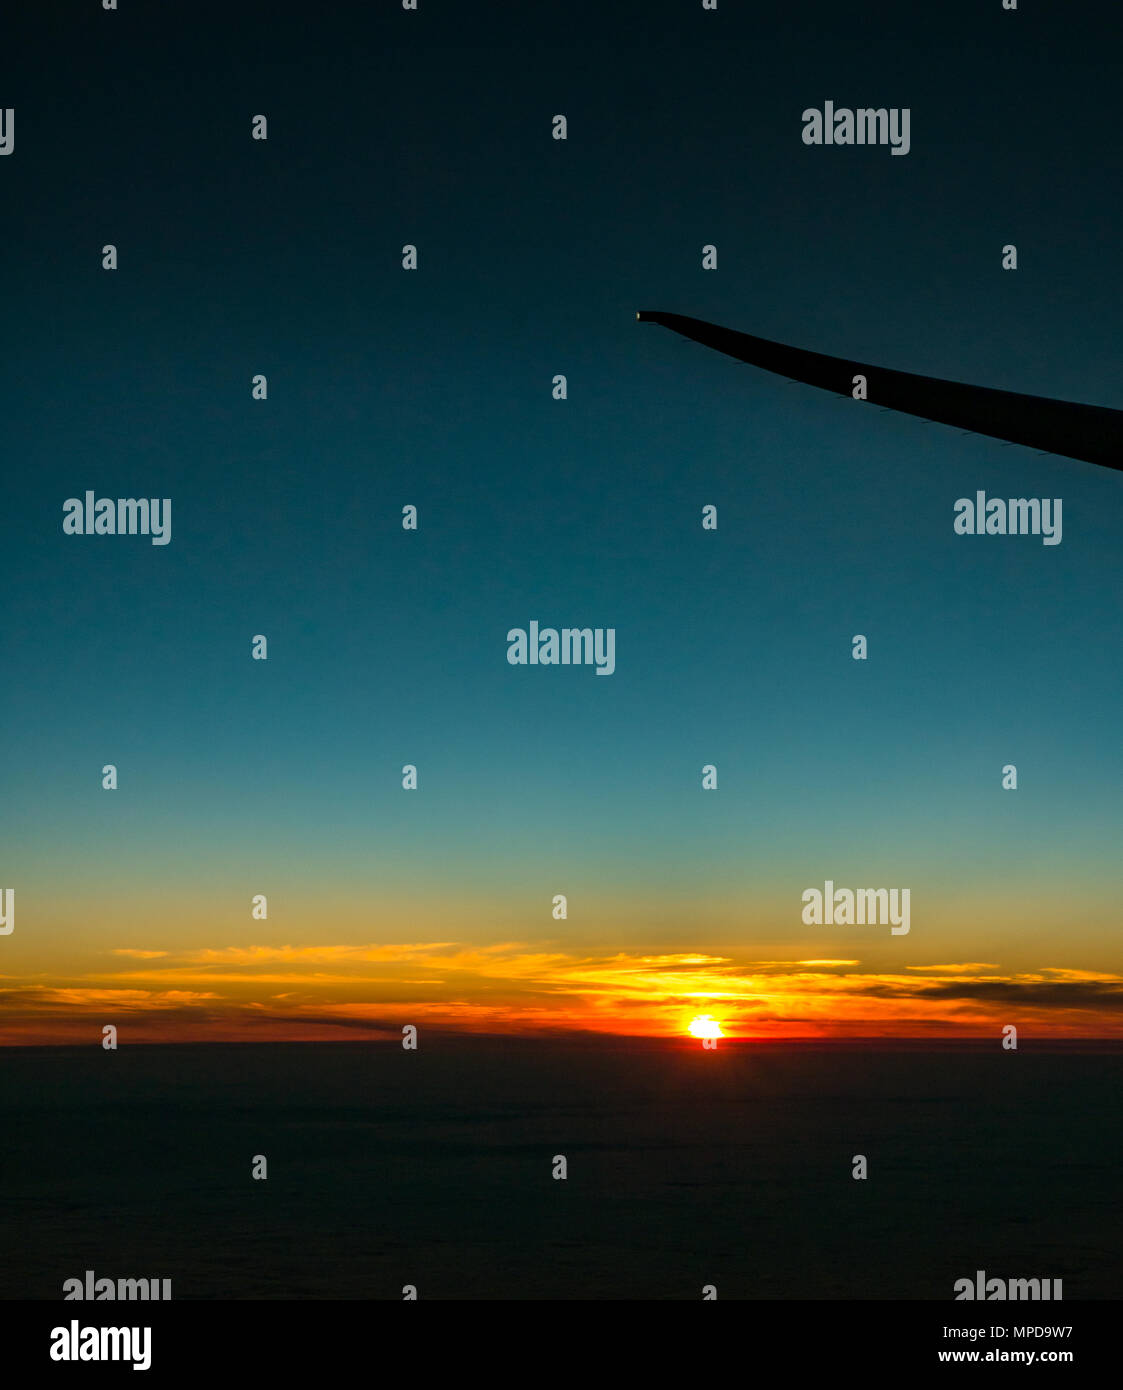 Orange sunset with clearly blue sky and low horizon, taken from aeroplane window, with airplane wing tip silhouette, take off from Heathro, London, UK - Stock Image